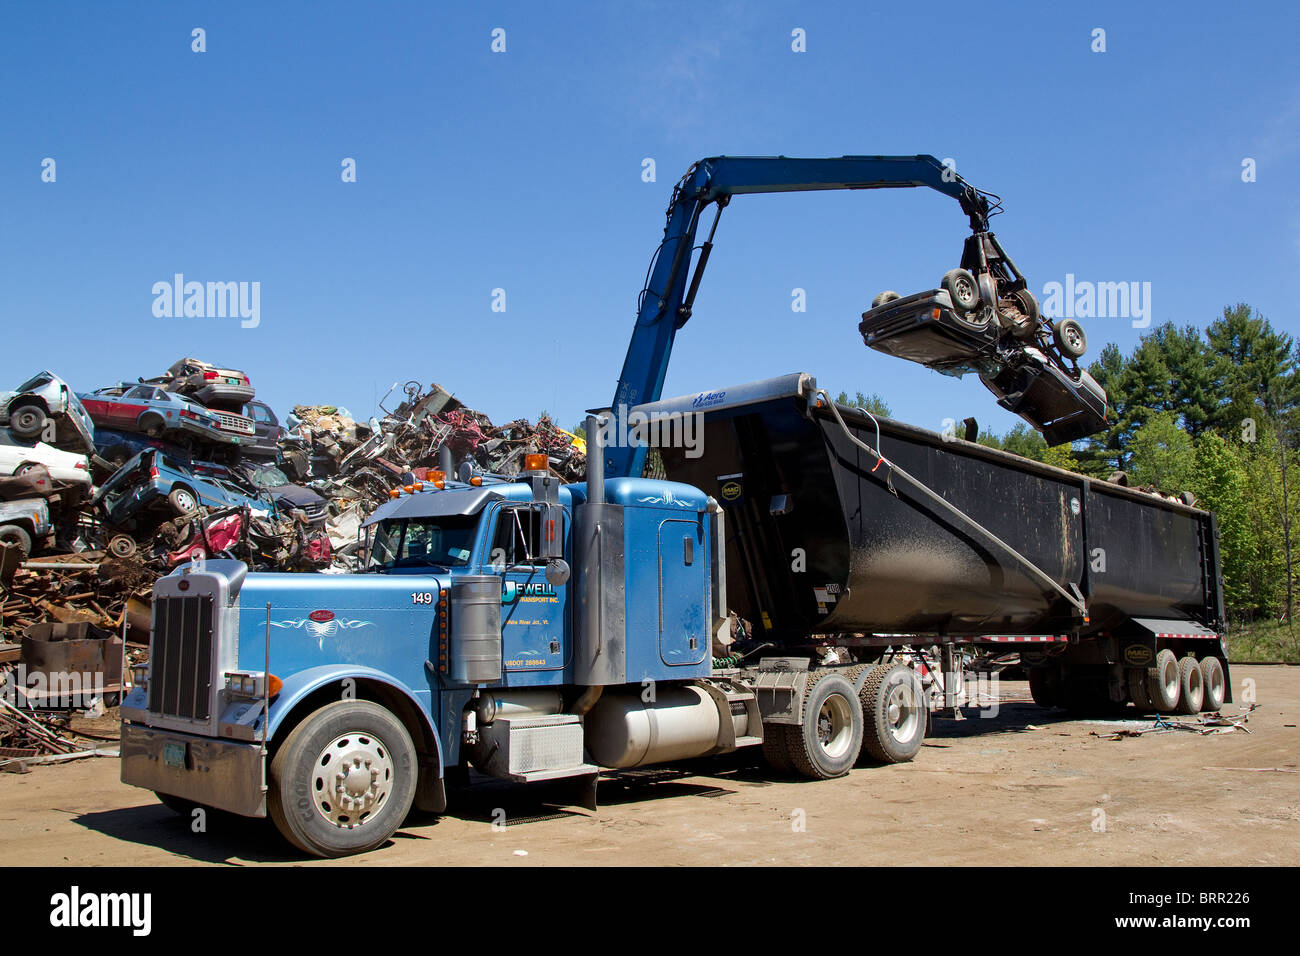 Crane loading semi truck with crushed cars, scrap metal automobiles ...